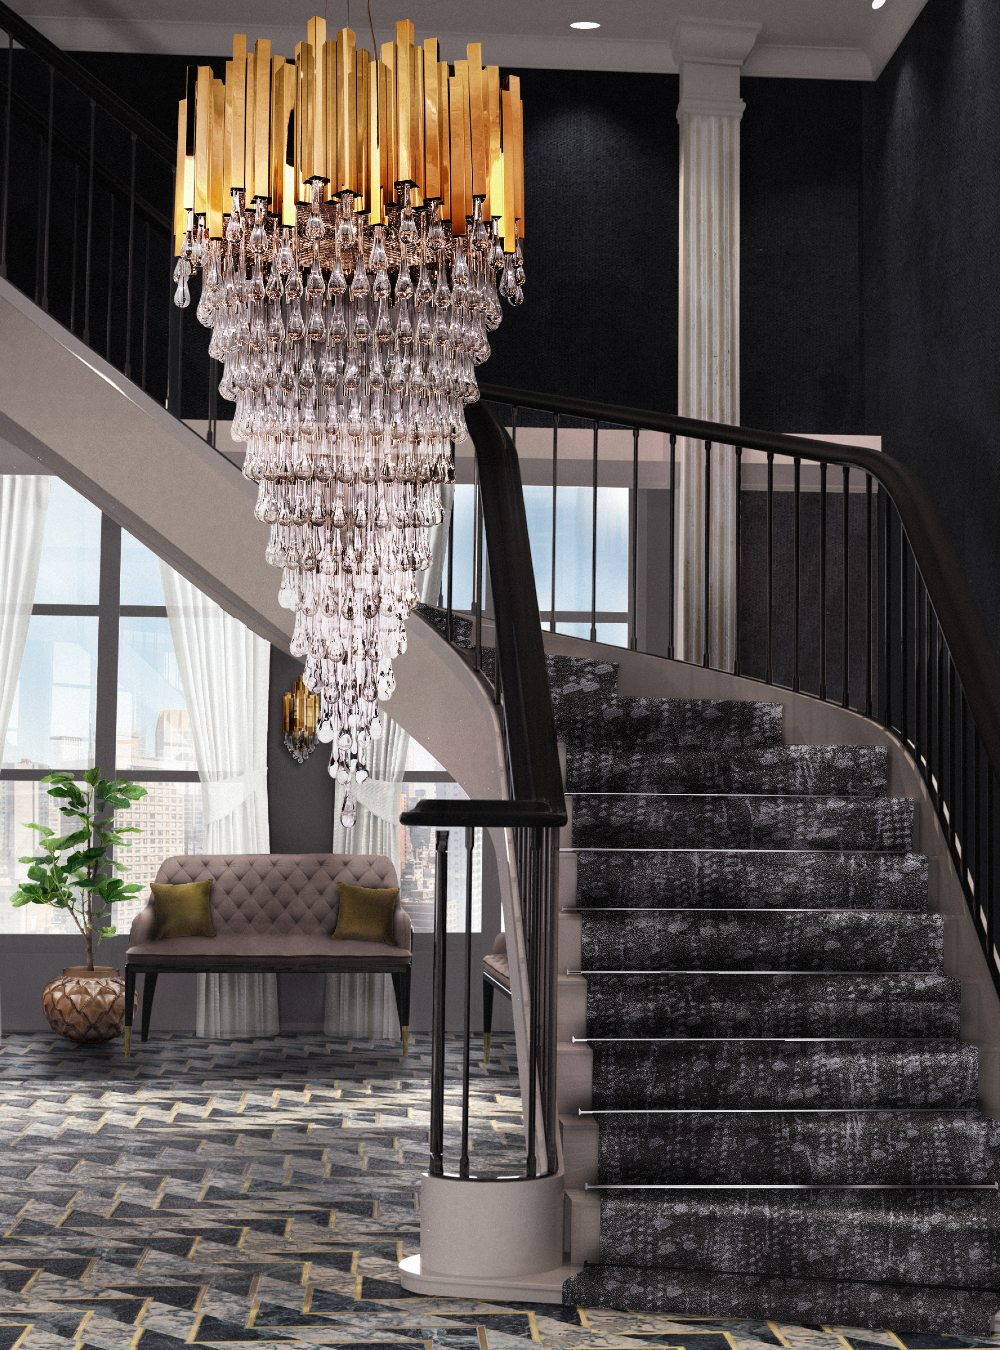 entryway lighting ideas 22 Outrageously Stunning Entryway Lighting Ideas outrageous entryway lighting ideas